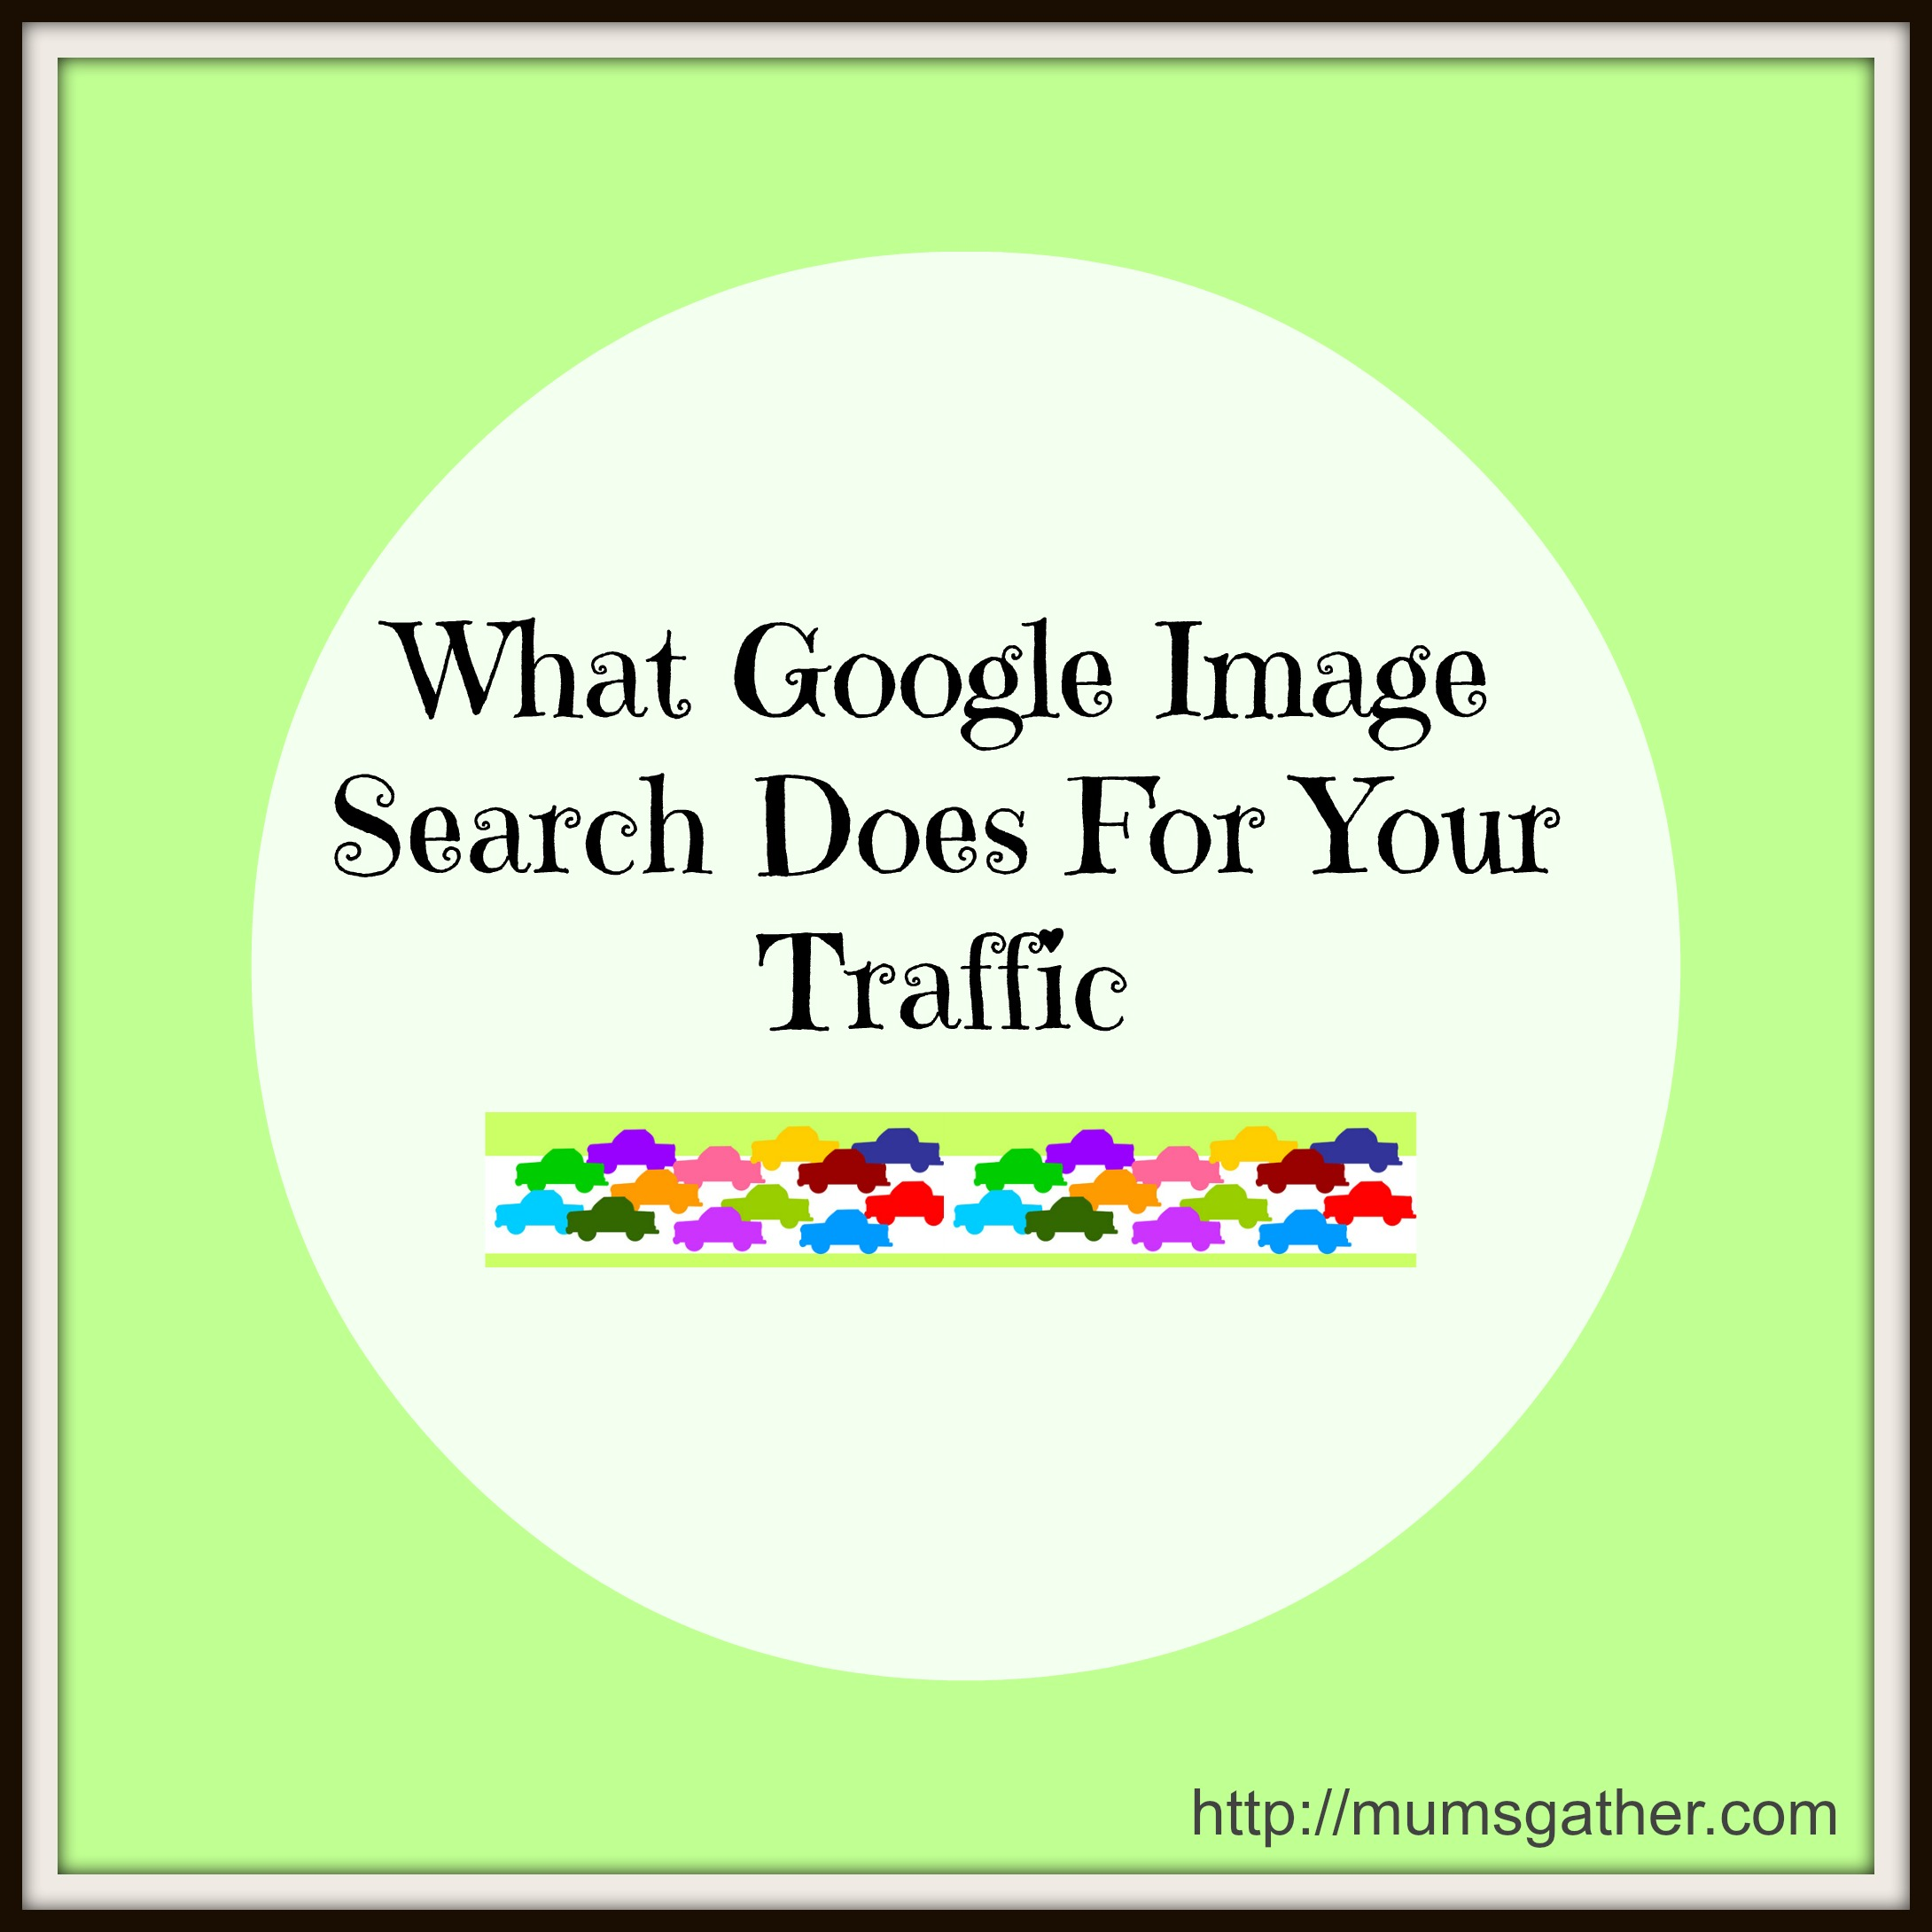 What Google Image Search Does For Your Traffic